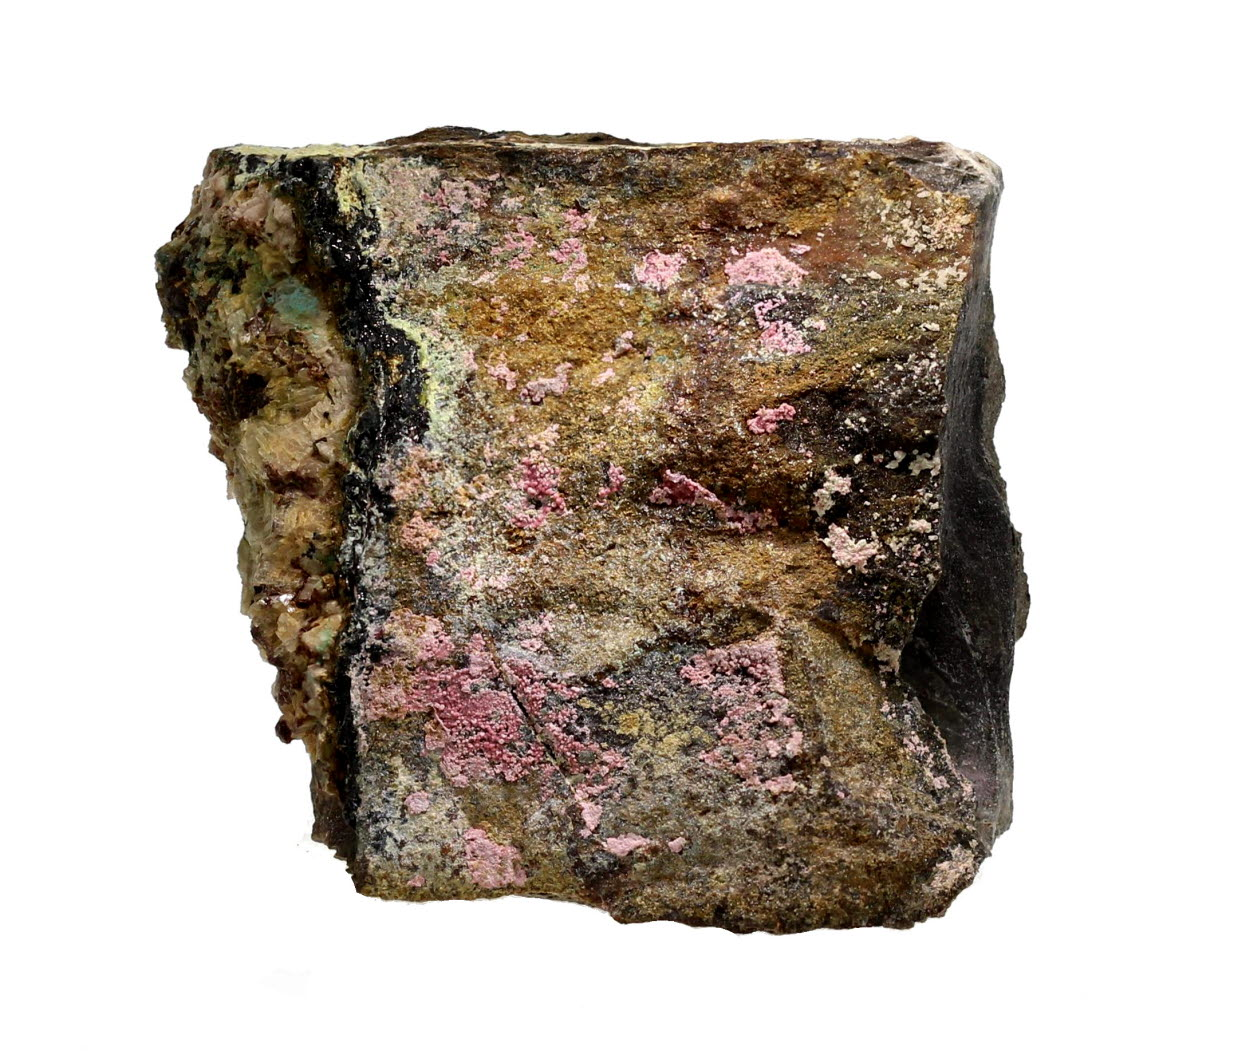 Erythrite & Uraninite